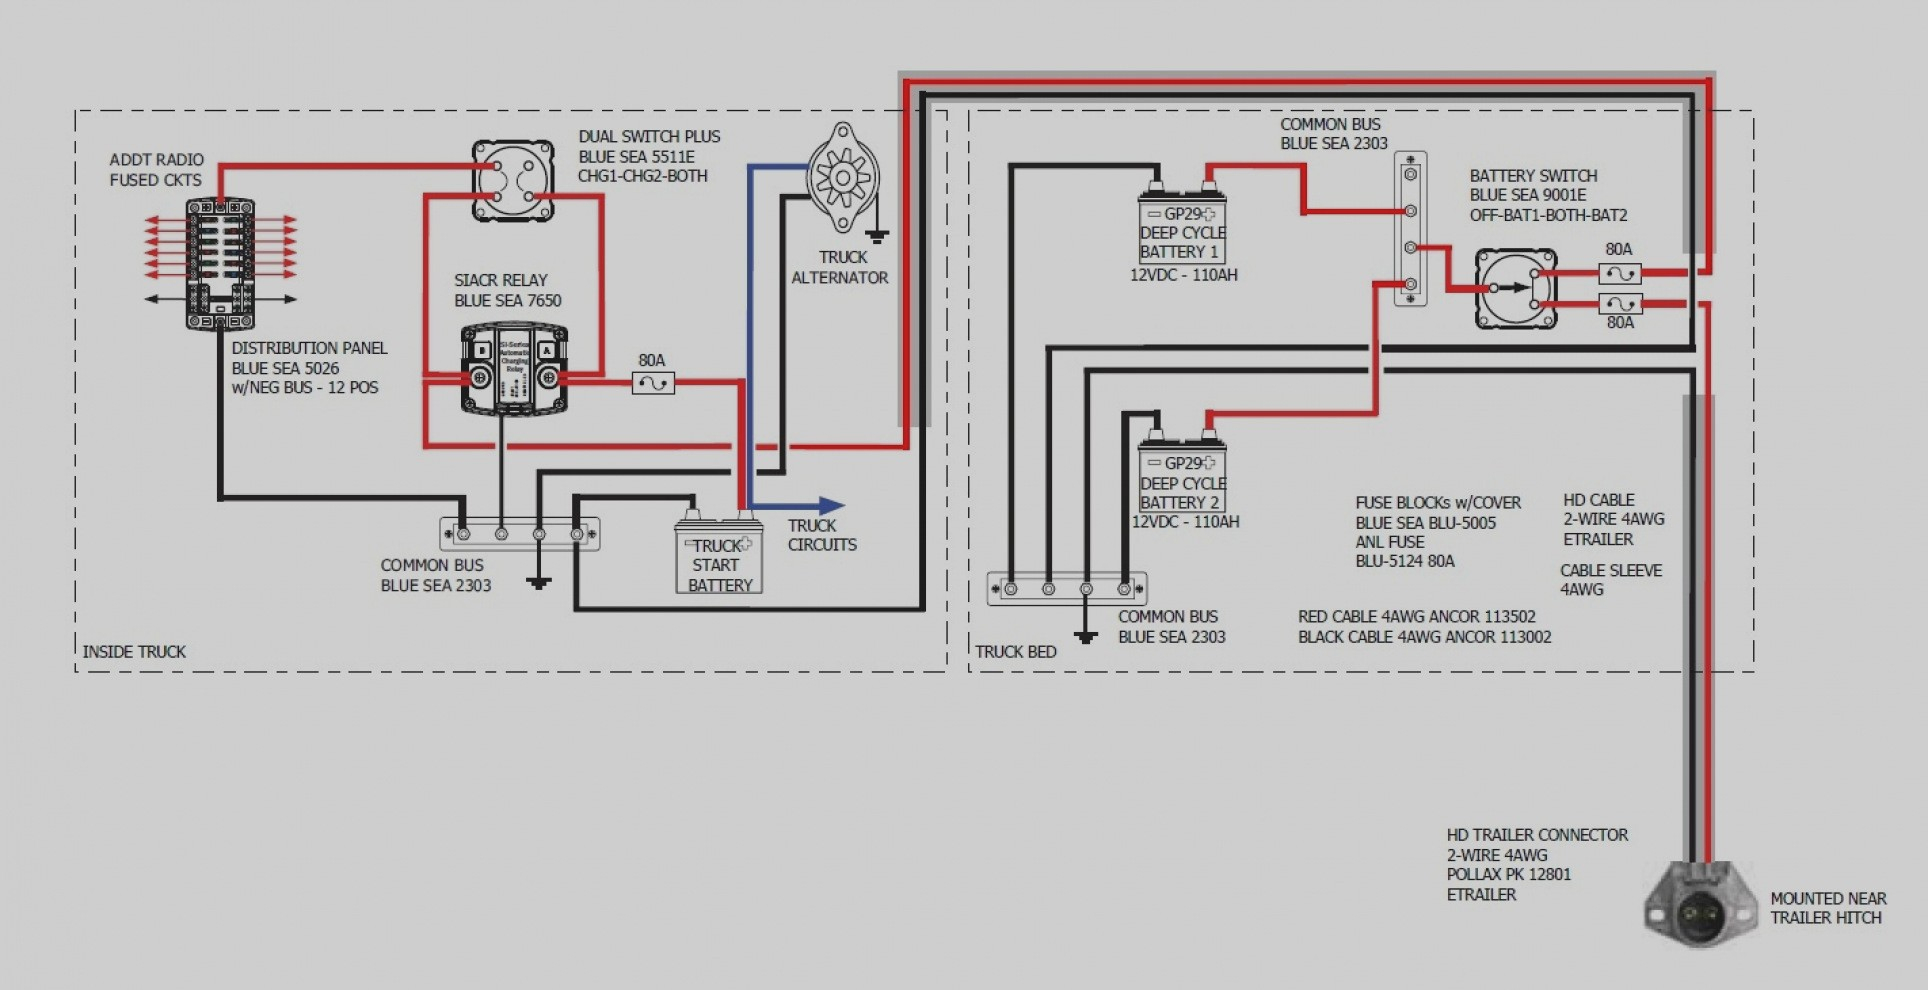 starcraft wiring harness mx 4804  1976 starcraft boat wiring diagram  mx 4804  1976 starcraft boat wiring diagram